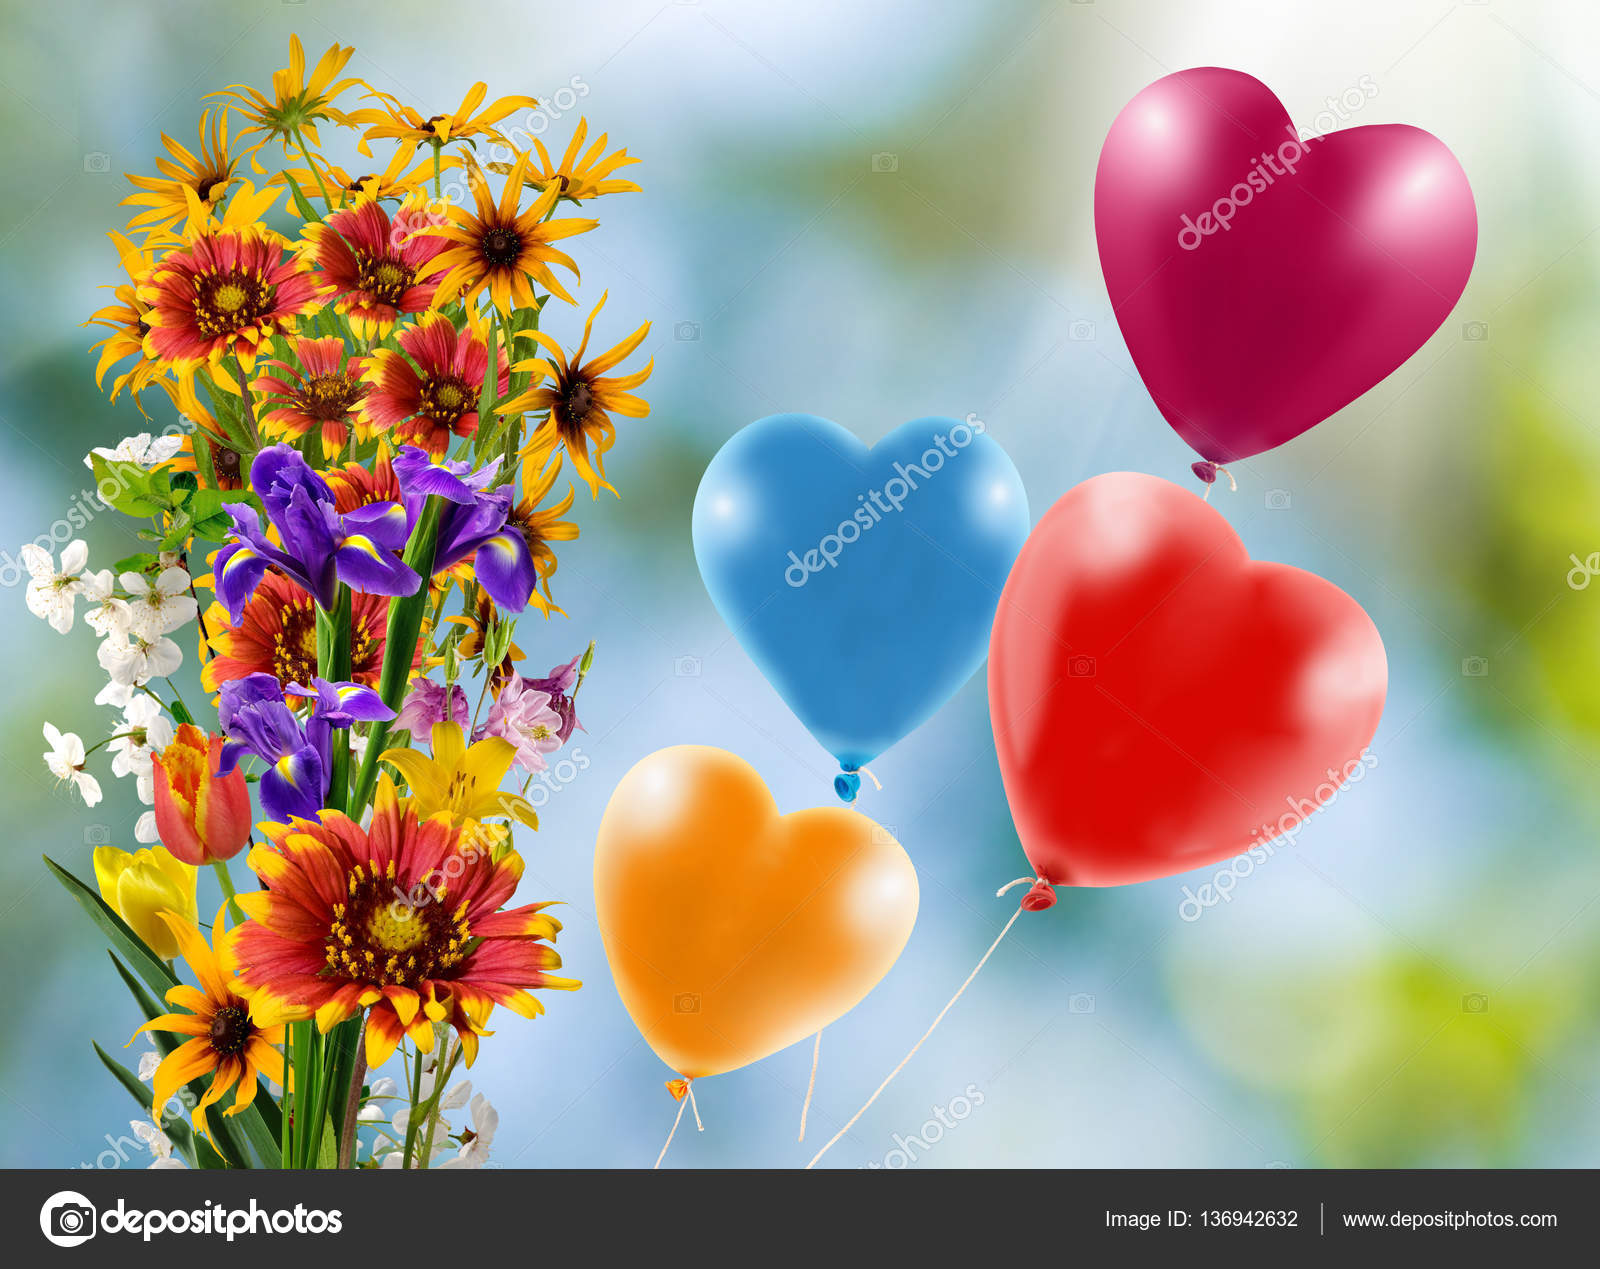 Pics Balloons And Flowers Image Of Beautiful Flowers And